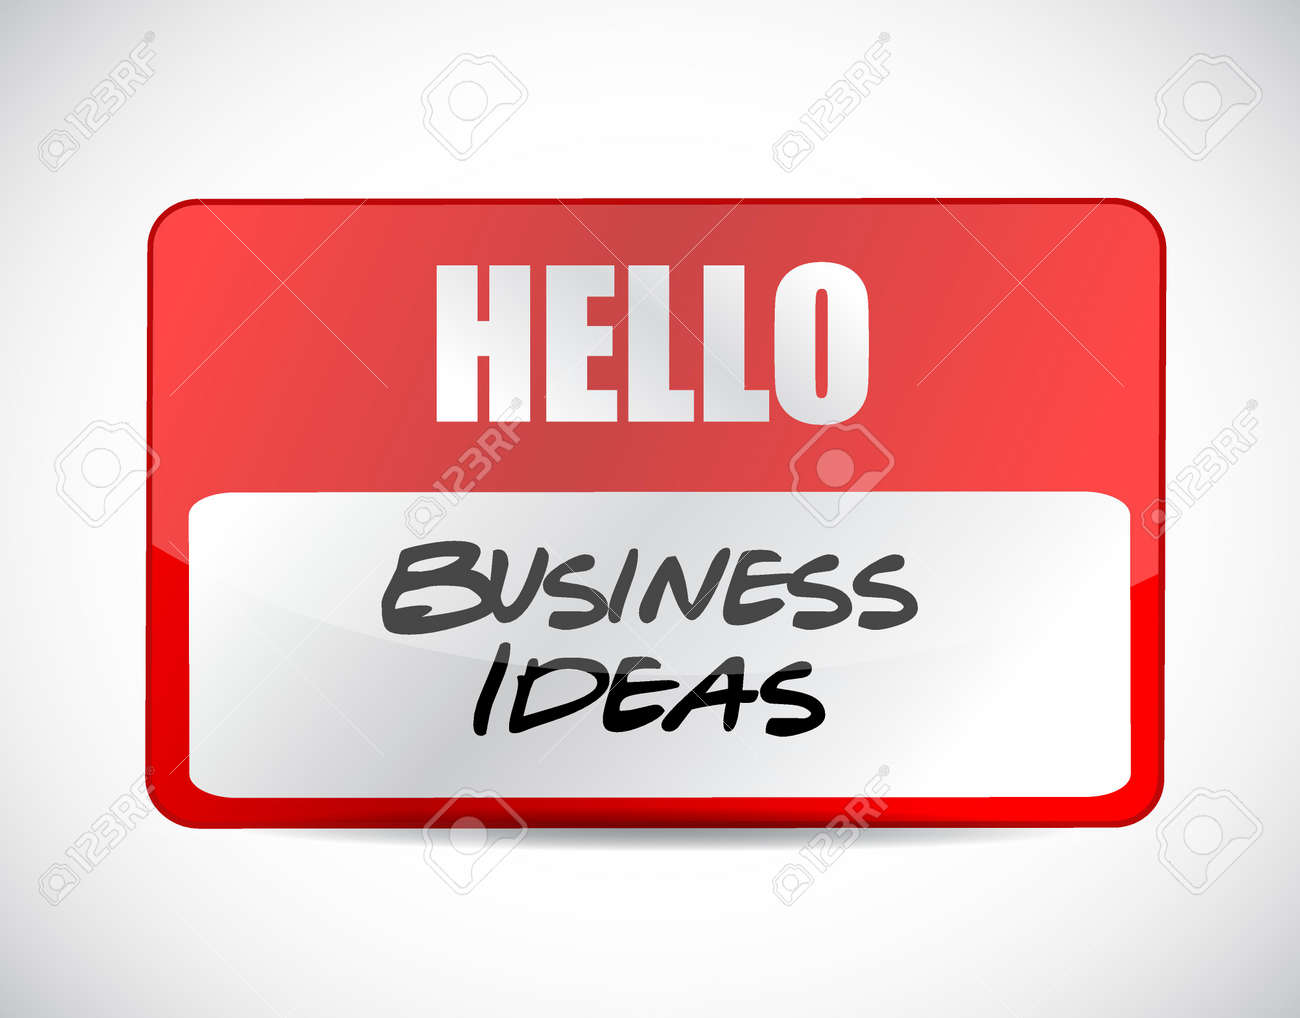 Business Ideas Name Tag Sign Concept Illustration Design Graphic ...